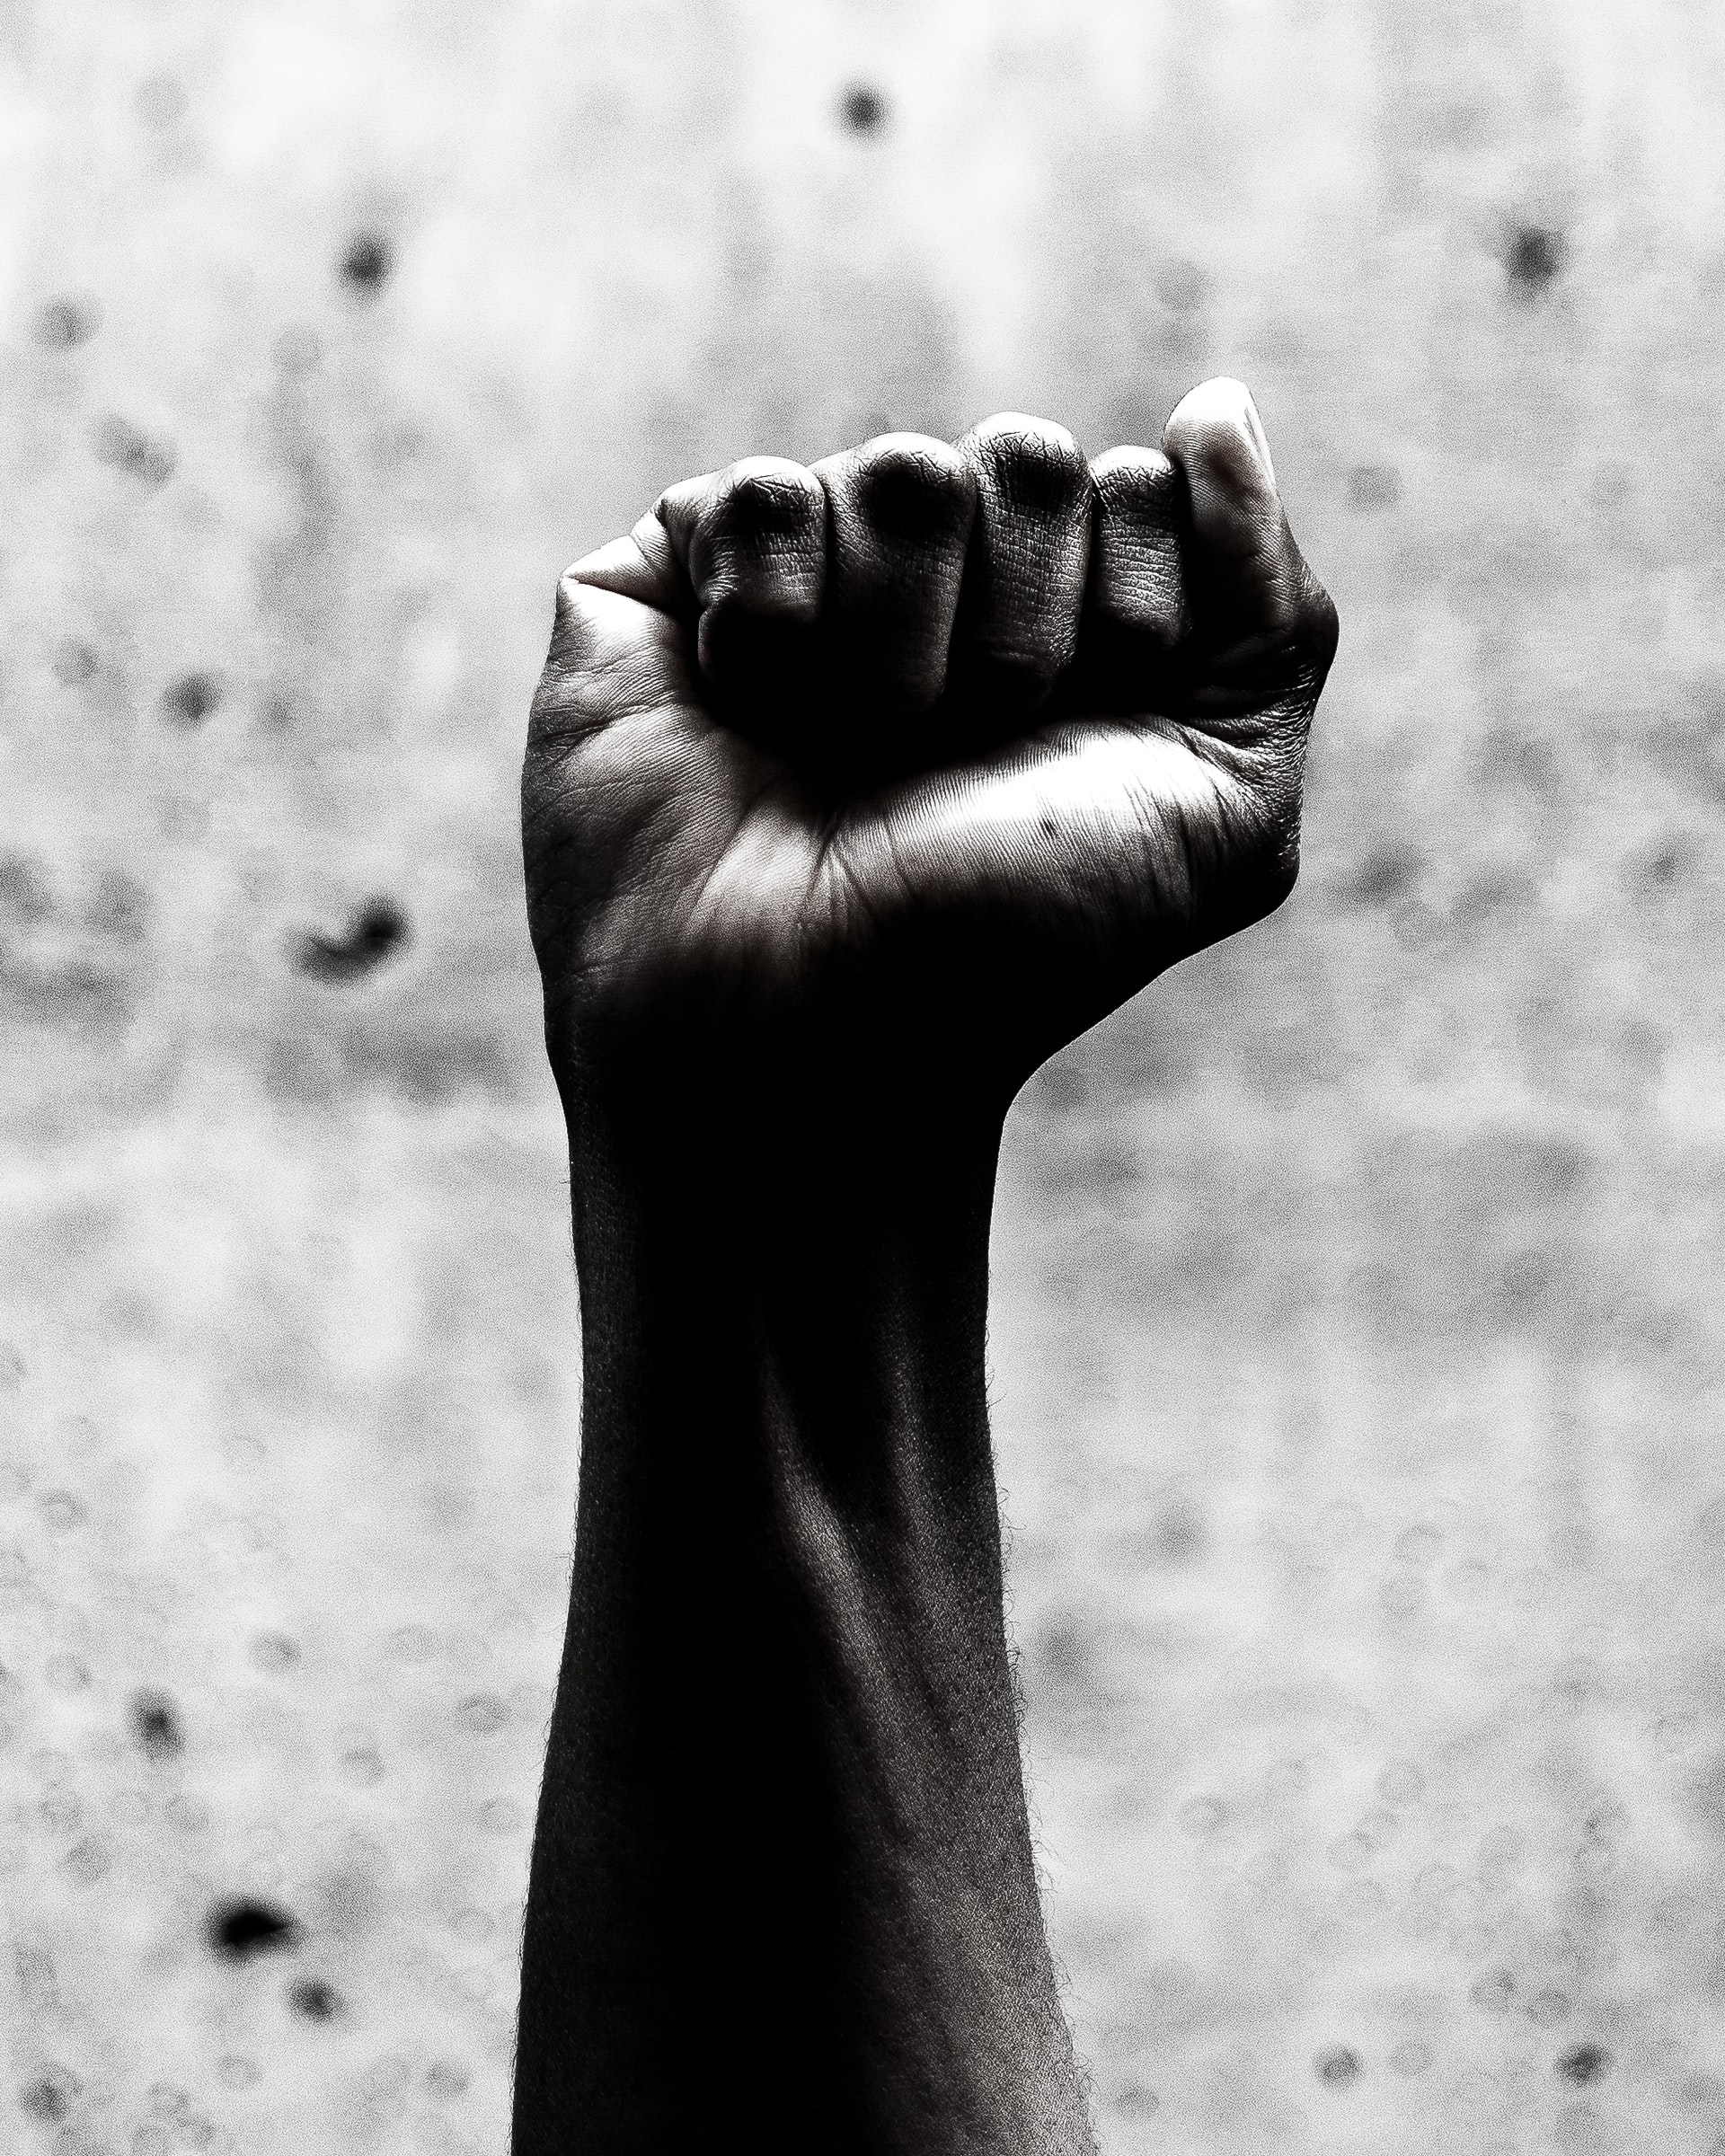 Grayscale image of Black fist